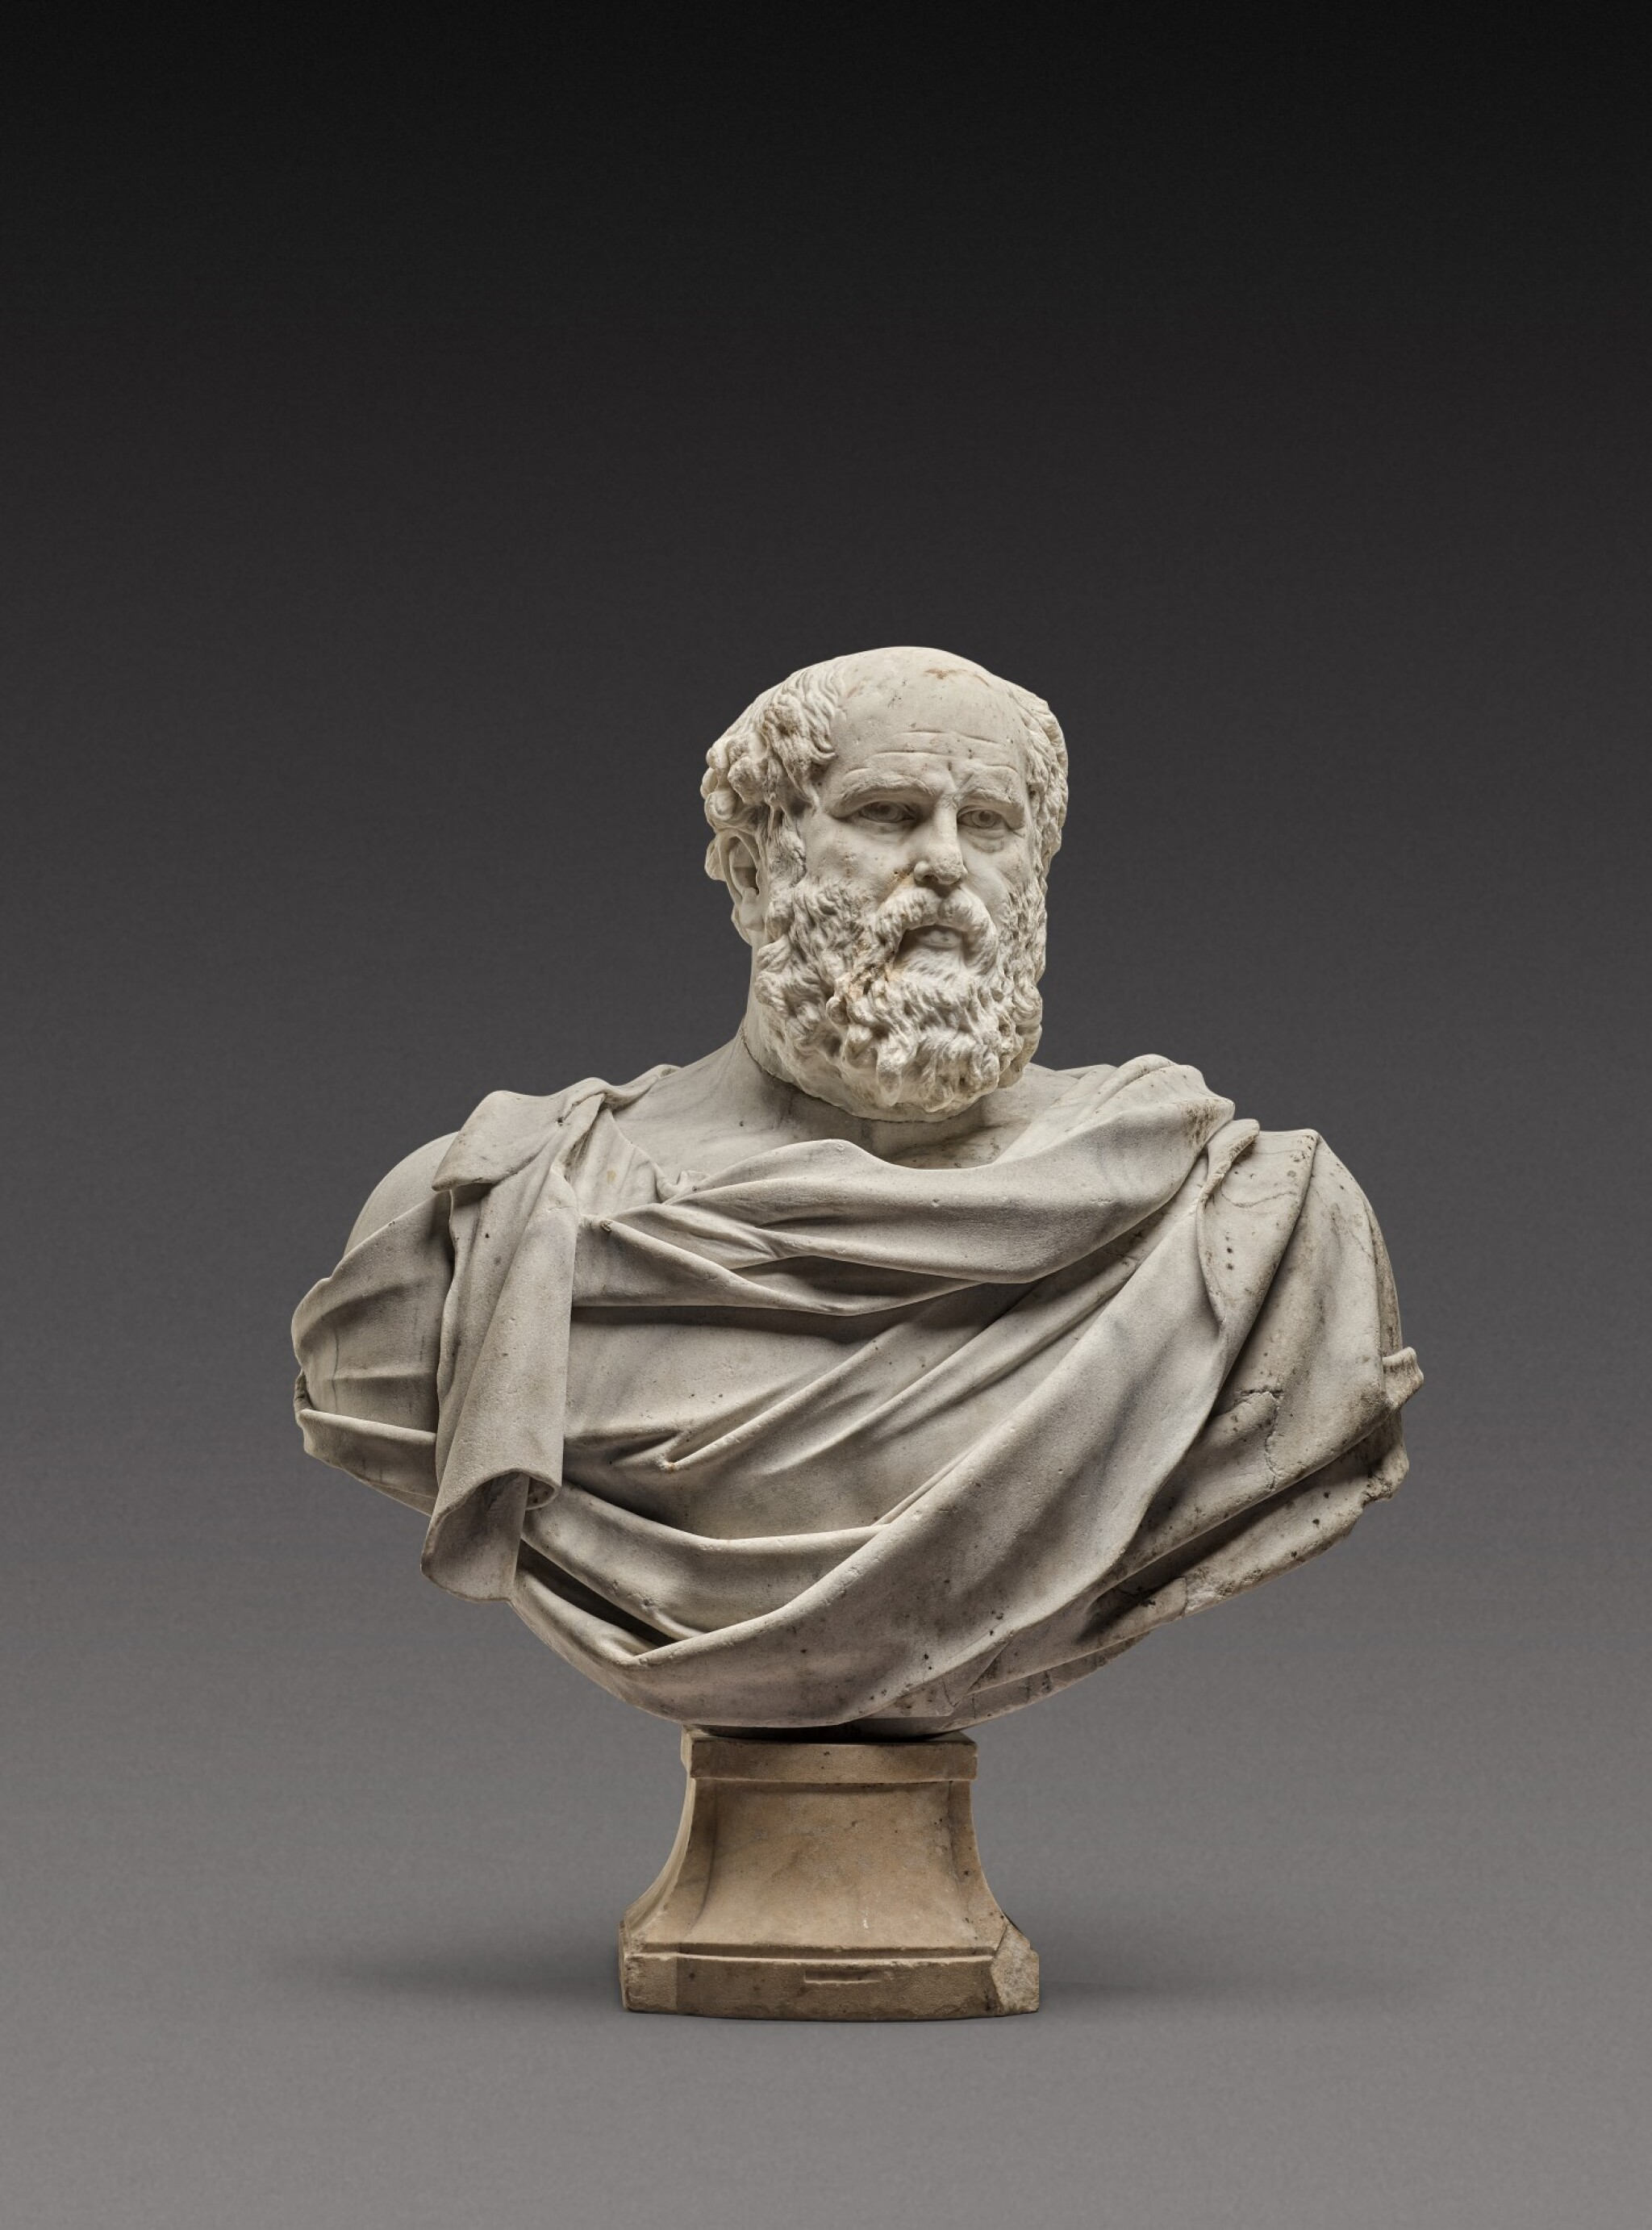 View 1 of Lot 121. Italian, 17th century | Monumental Bust of a Philosopher.